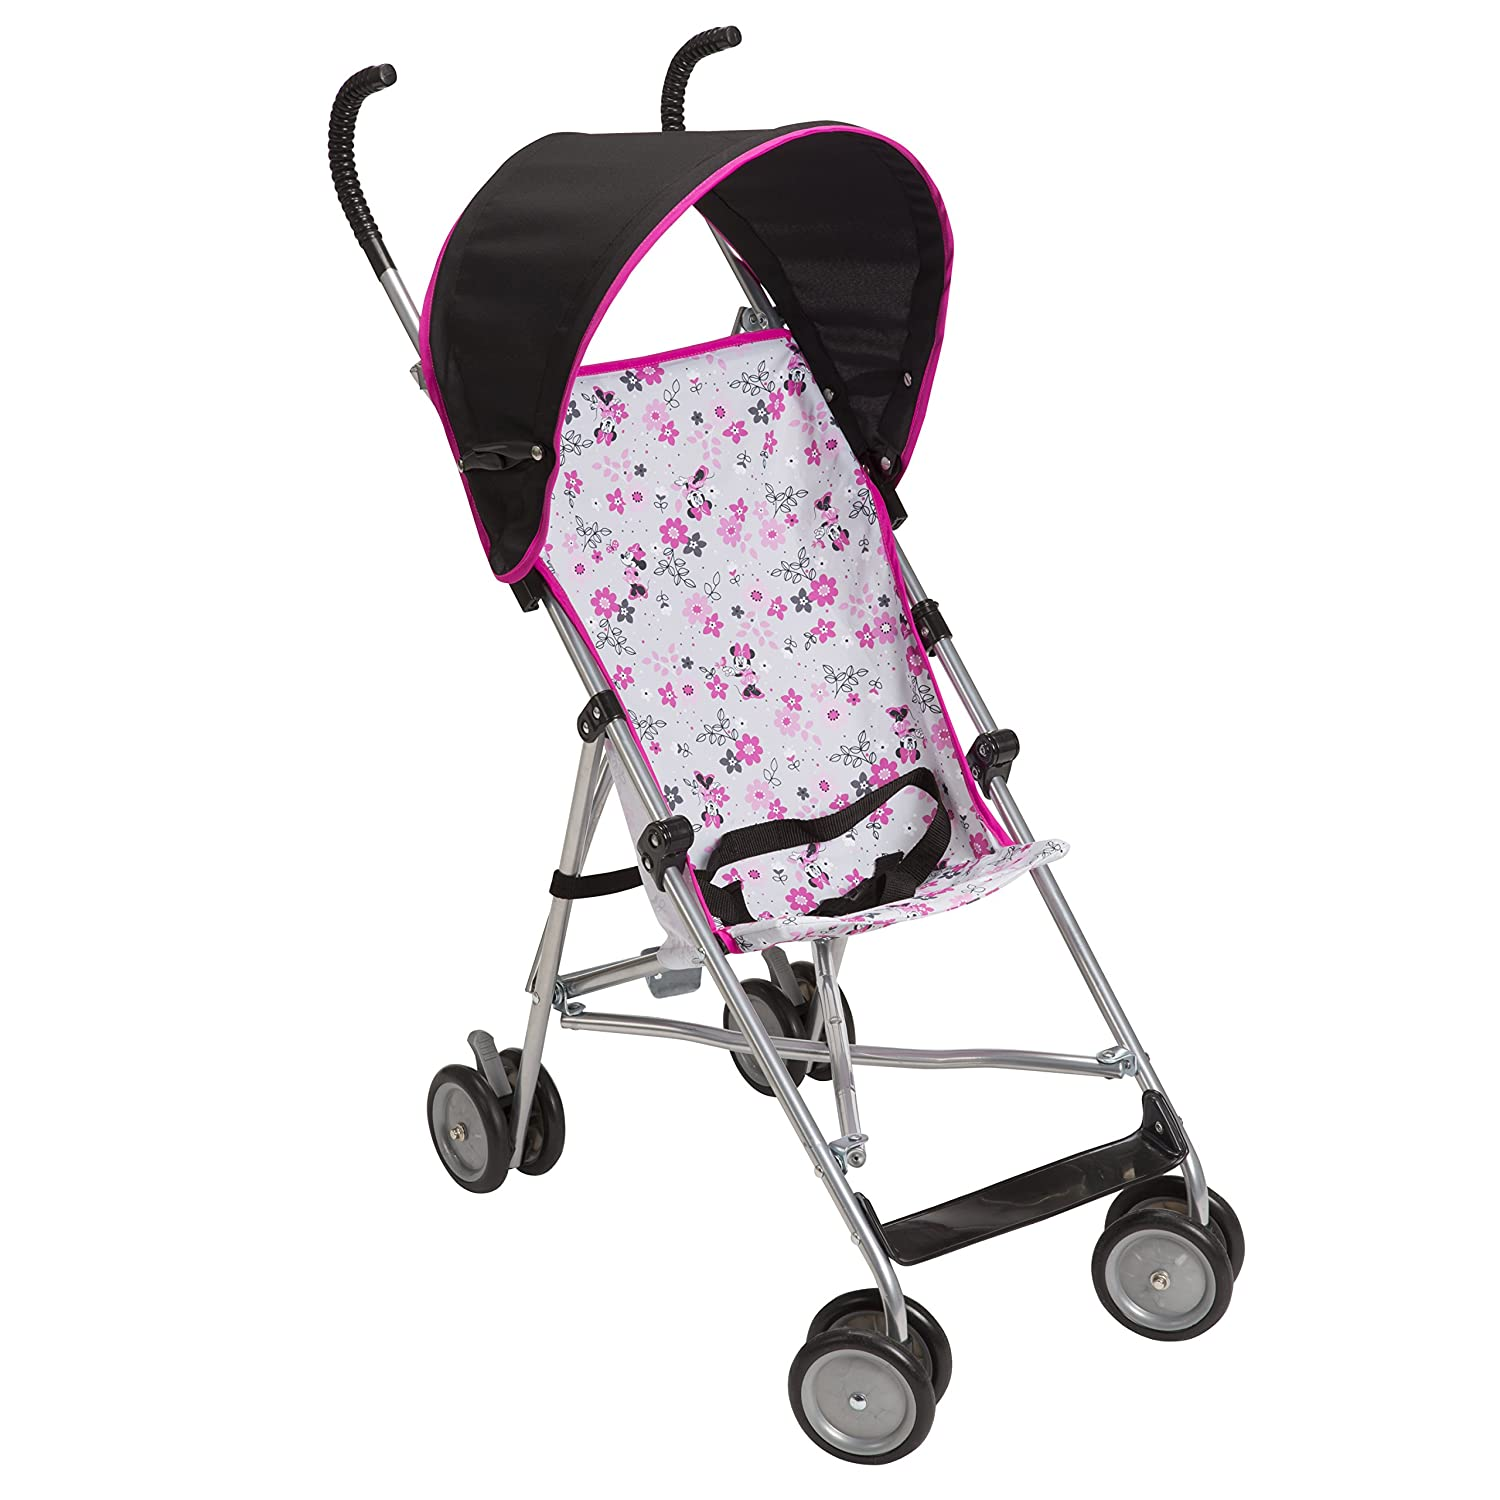 Cosco Umbrella Stroller with Canopy, Dots Cosco Inc US119AOY